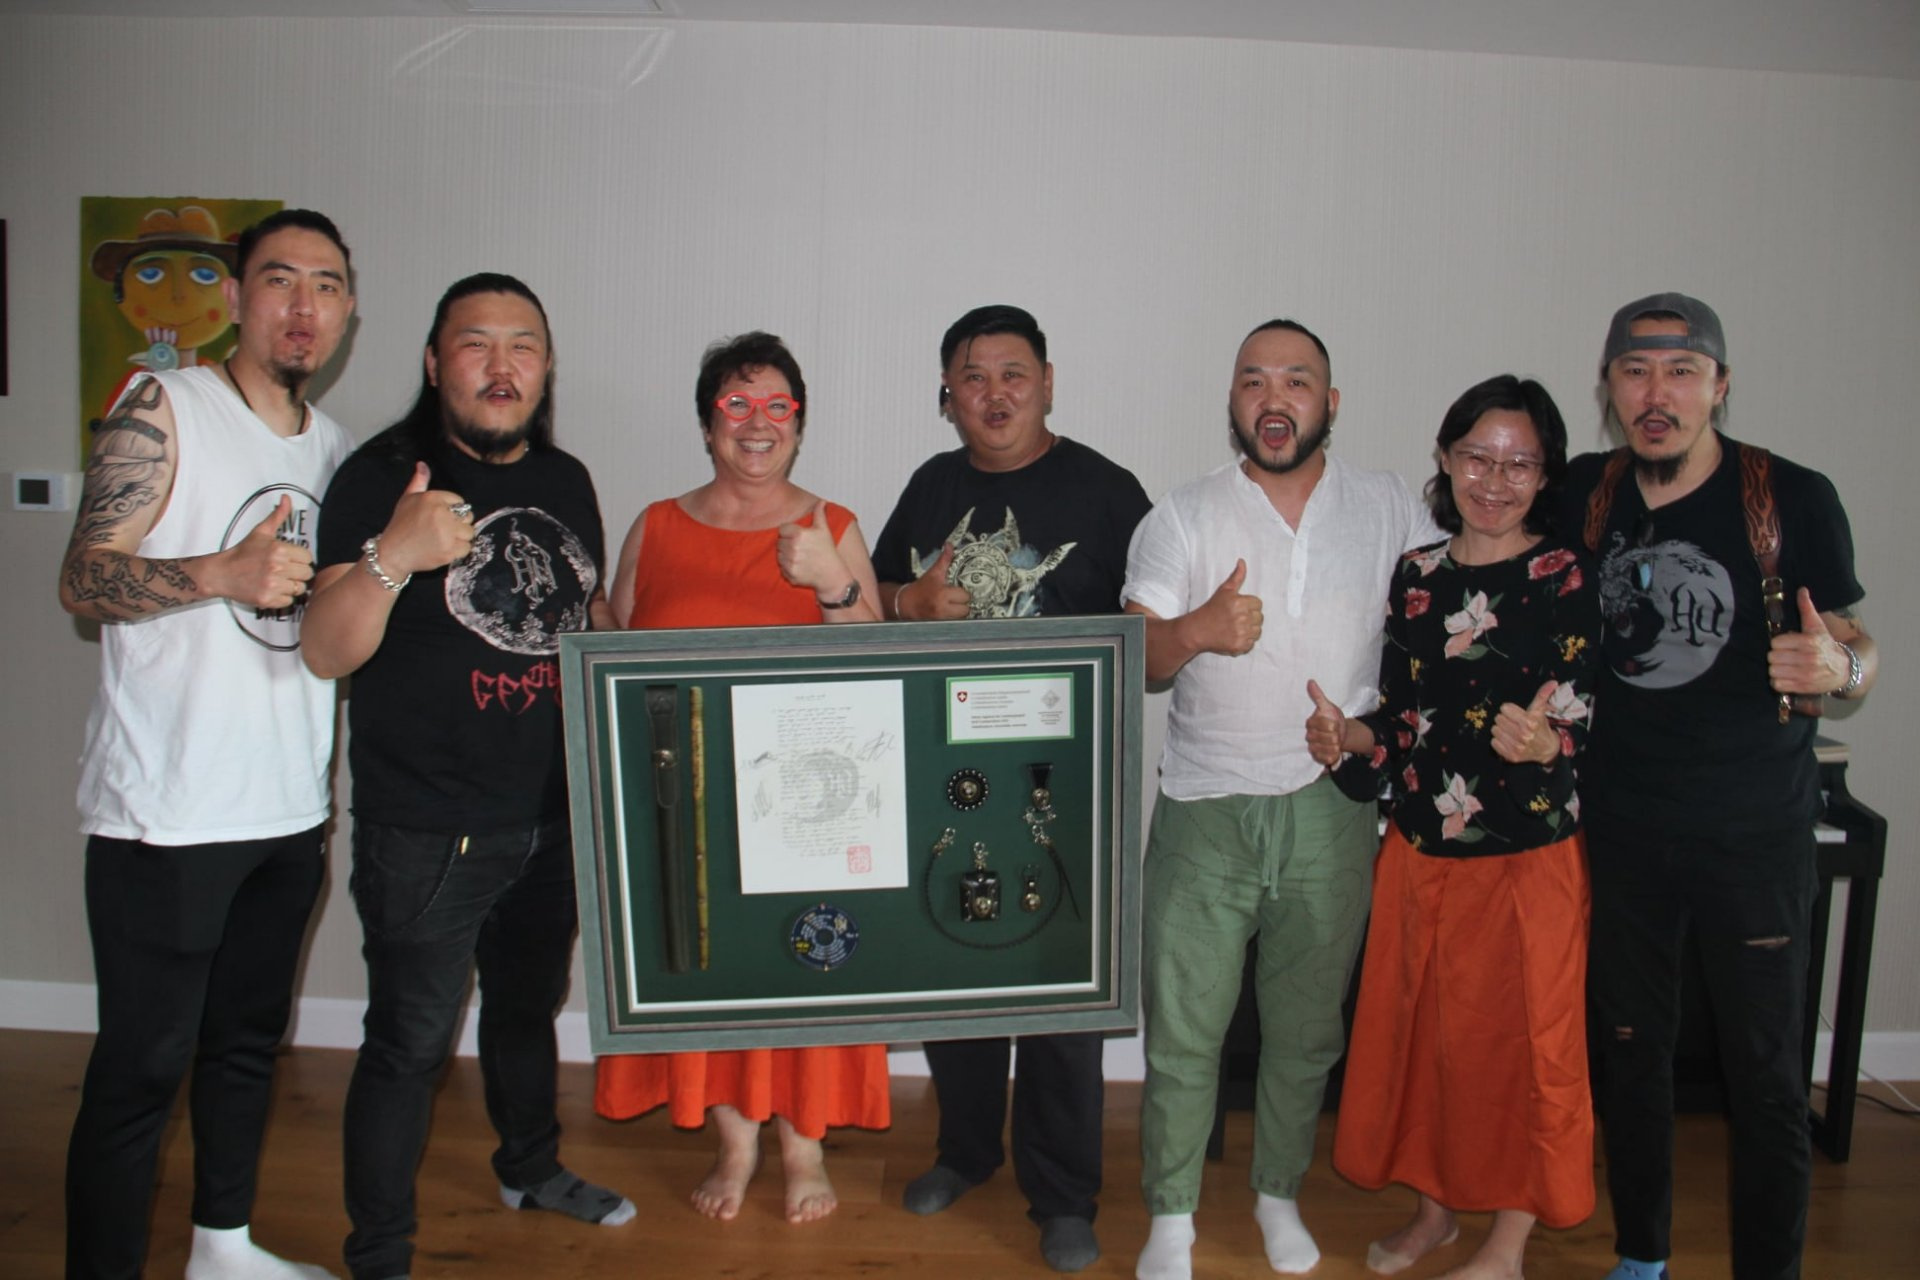 The Swiss Cooperation in Mongolia and the Mongolian National Federation of Pasture User Groups of Herders to cooperate with